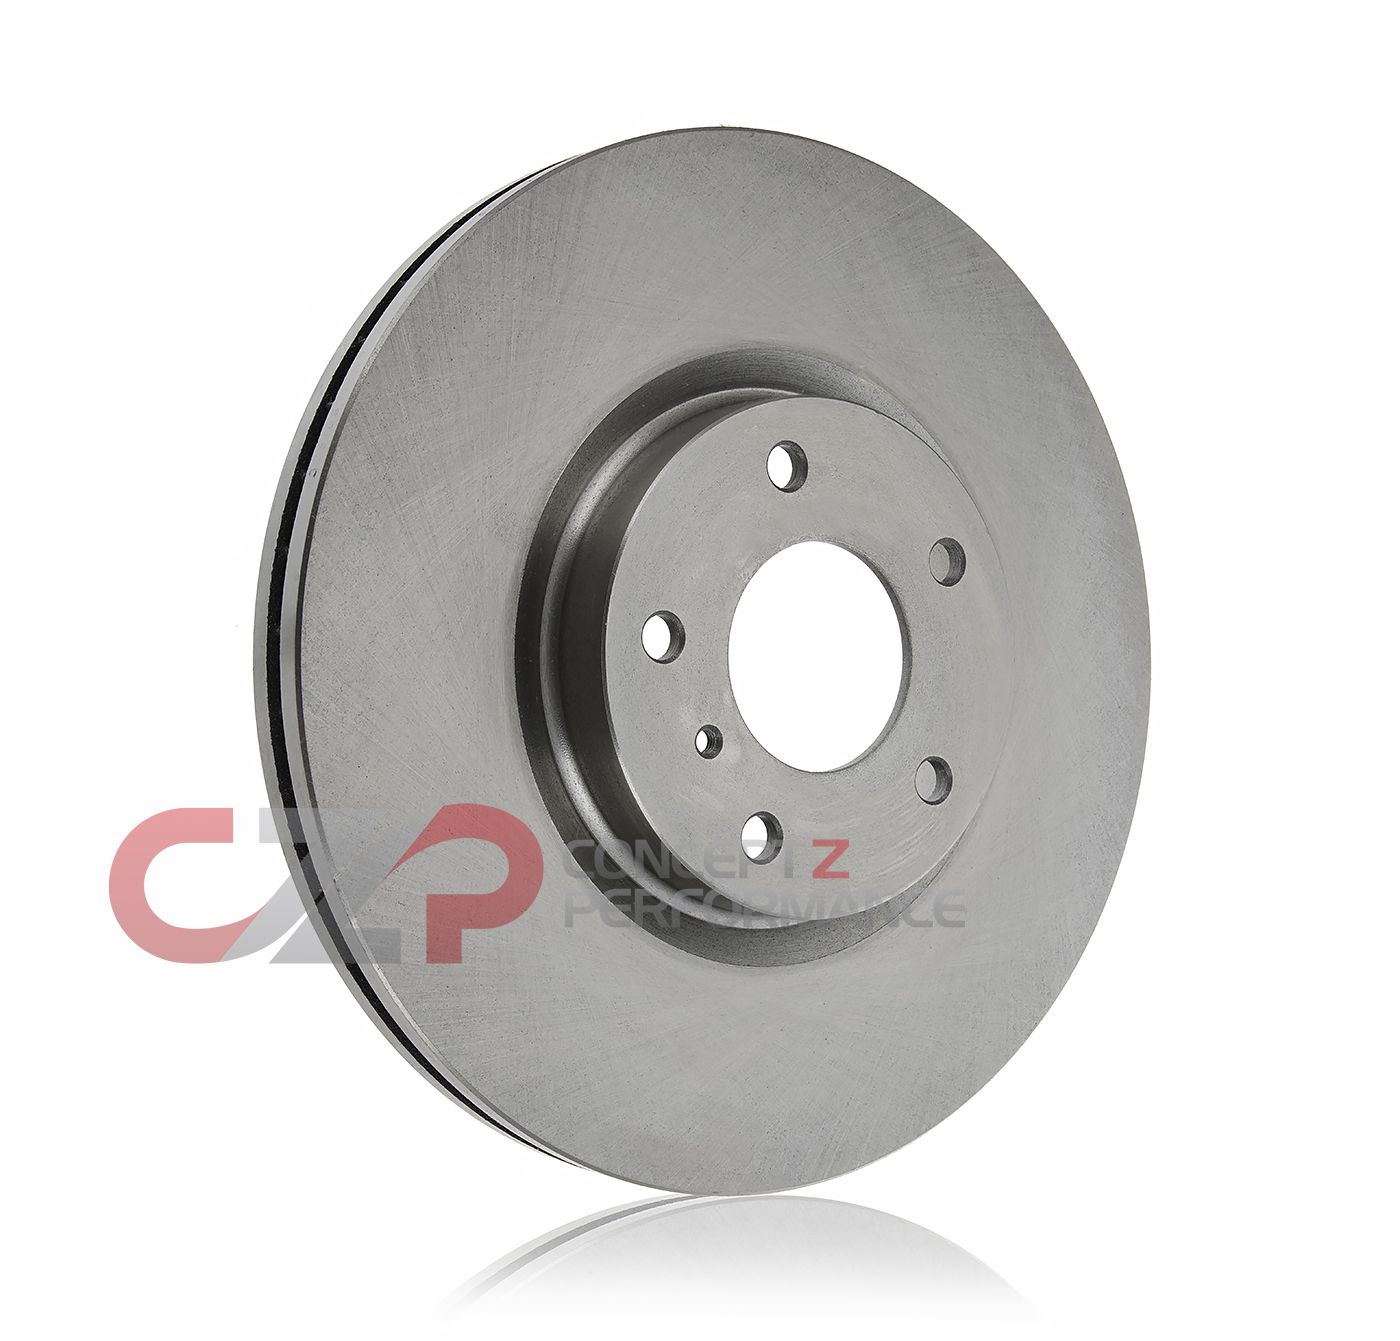 Nissan OEM Value Advantage Front Brake Rotor - Nissan 350Z 06-08 Z33 Non-Brembo